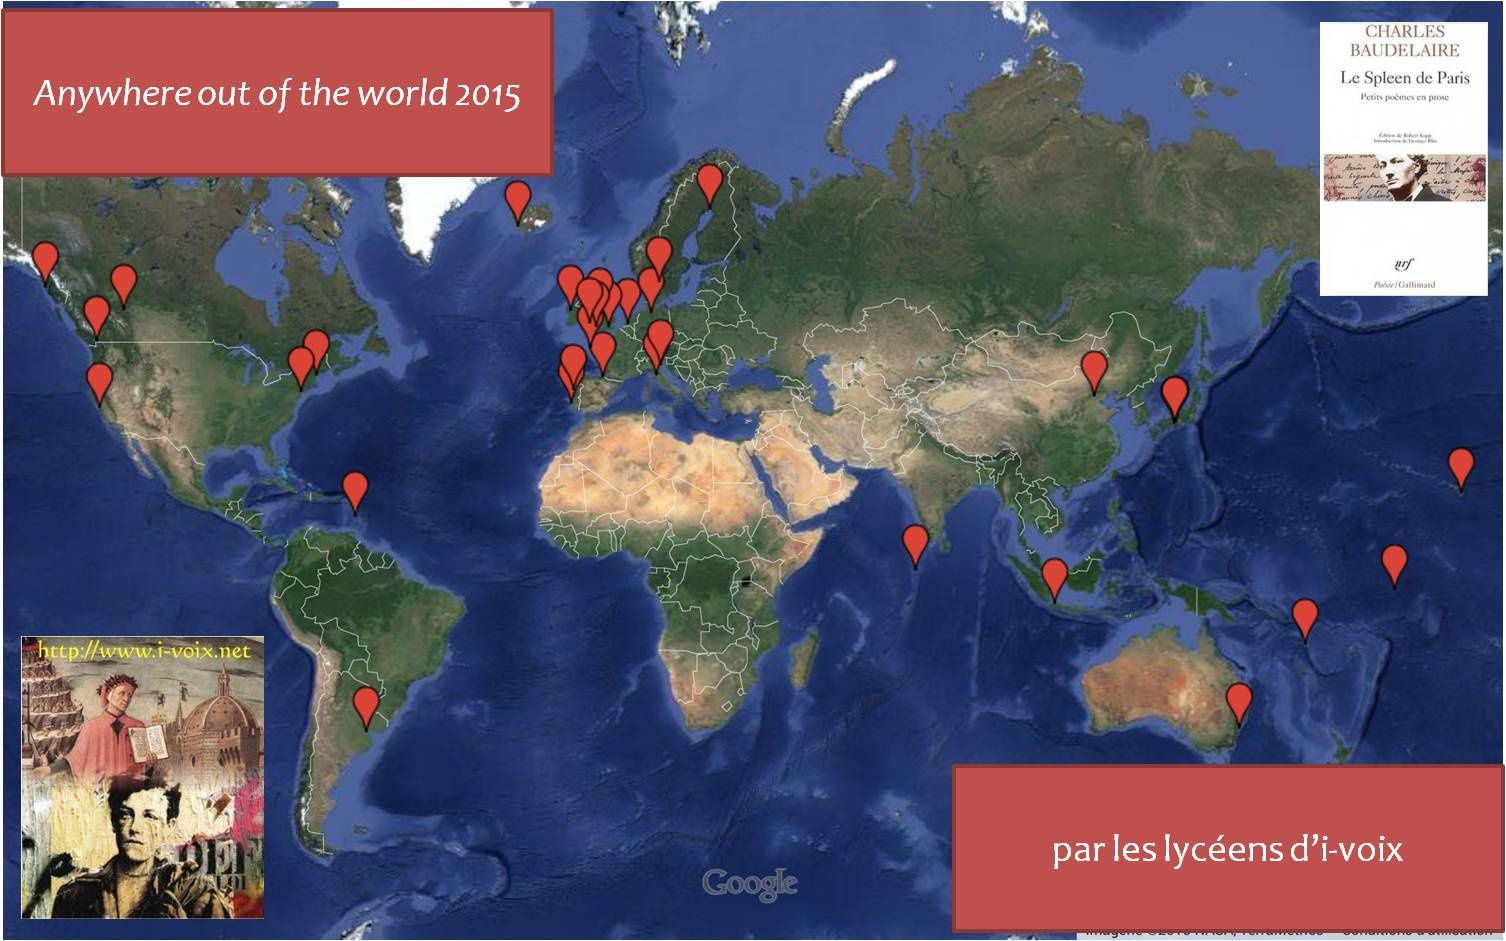 Anywhere out of the world 2015 - Cartographie poétique